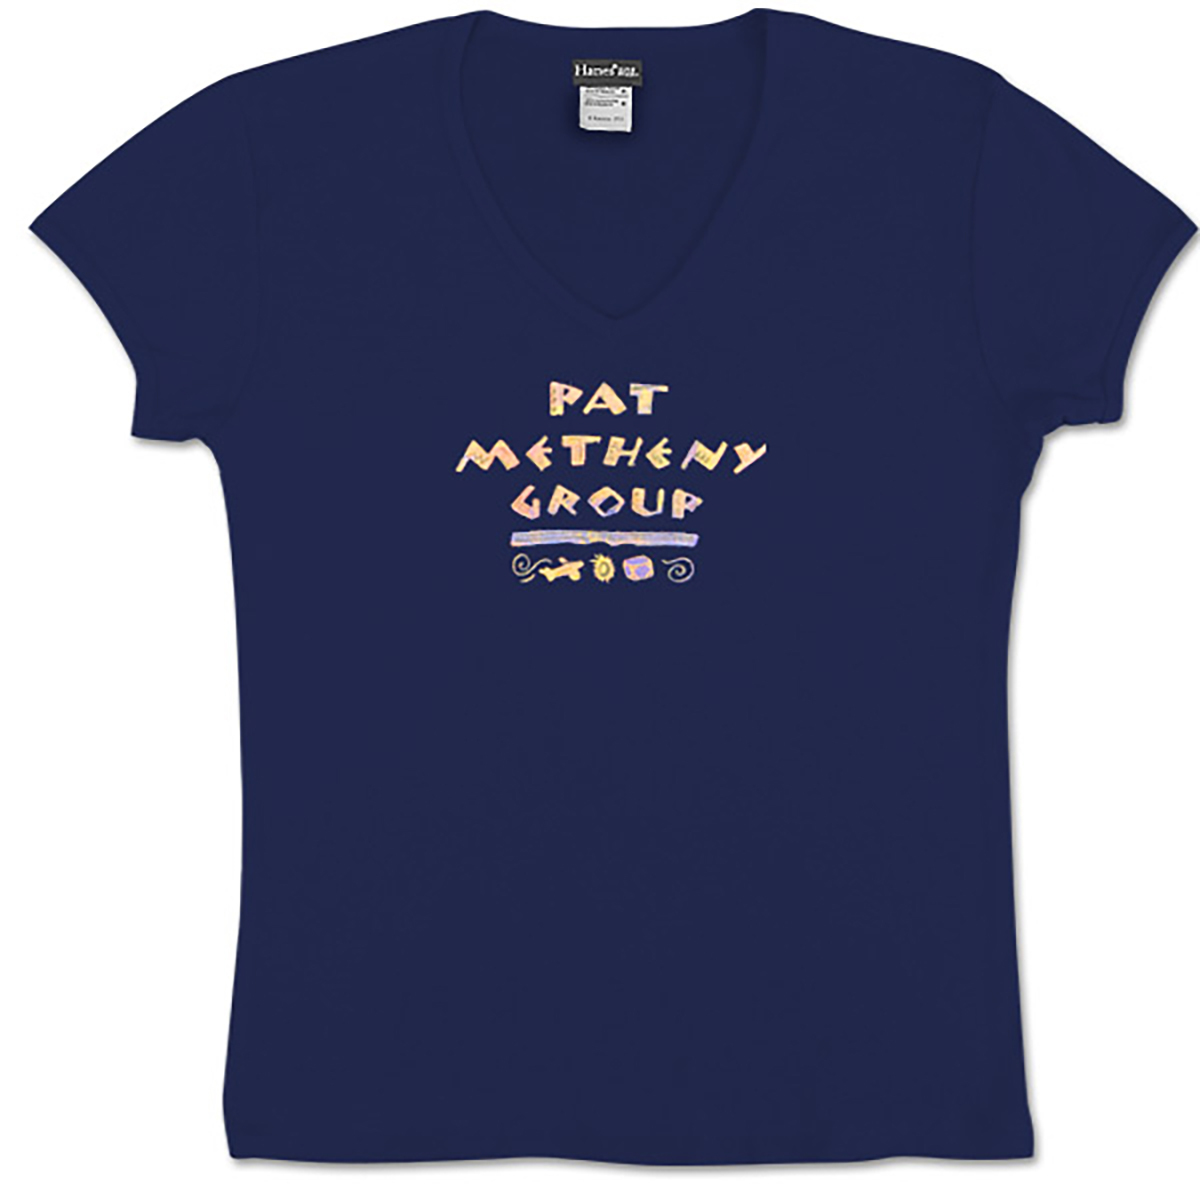 Pat Metheny Group - V-Neck Girlie T-Shirt